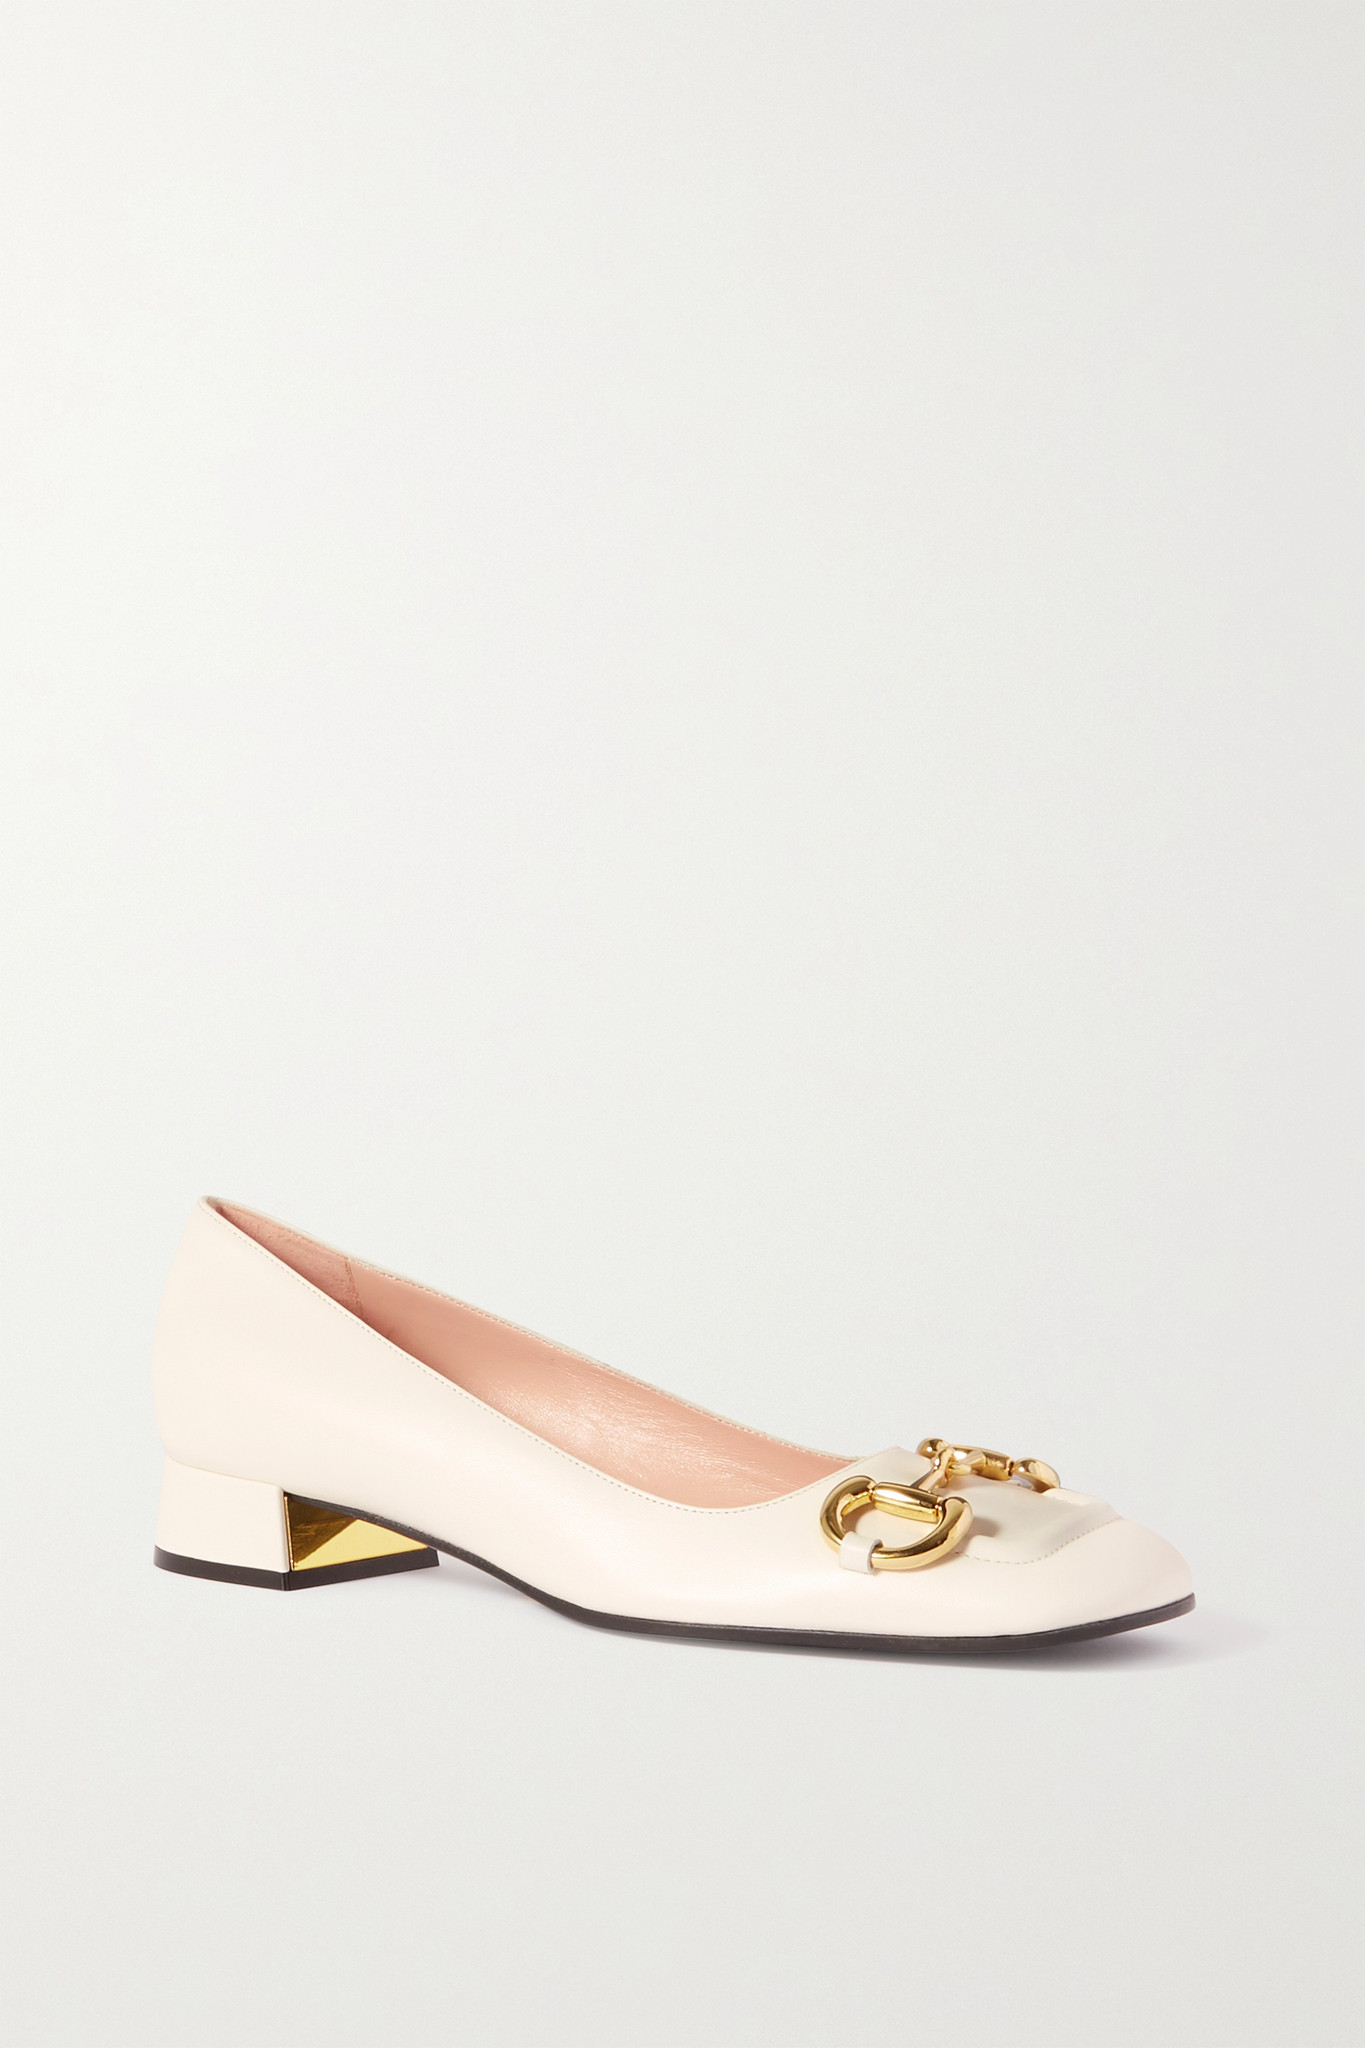 Gucci - Baby Horsebit-detailed Leather Pumps - White - IT37.5